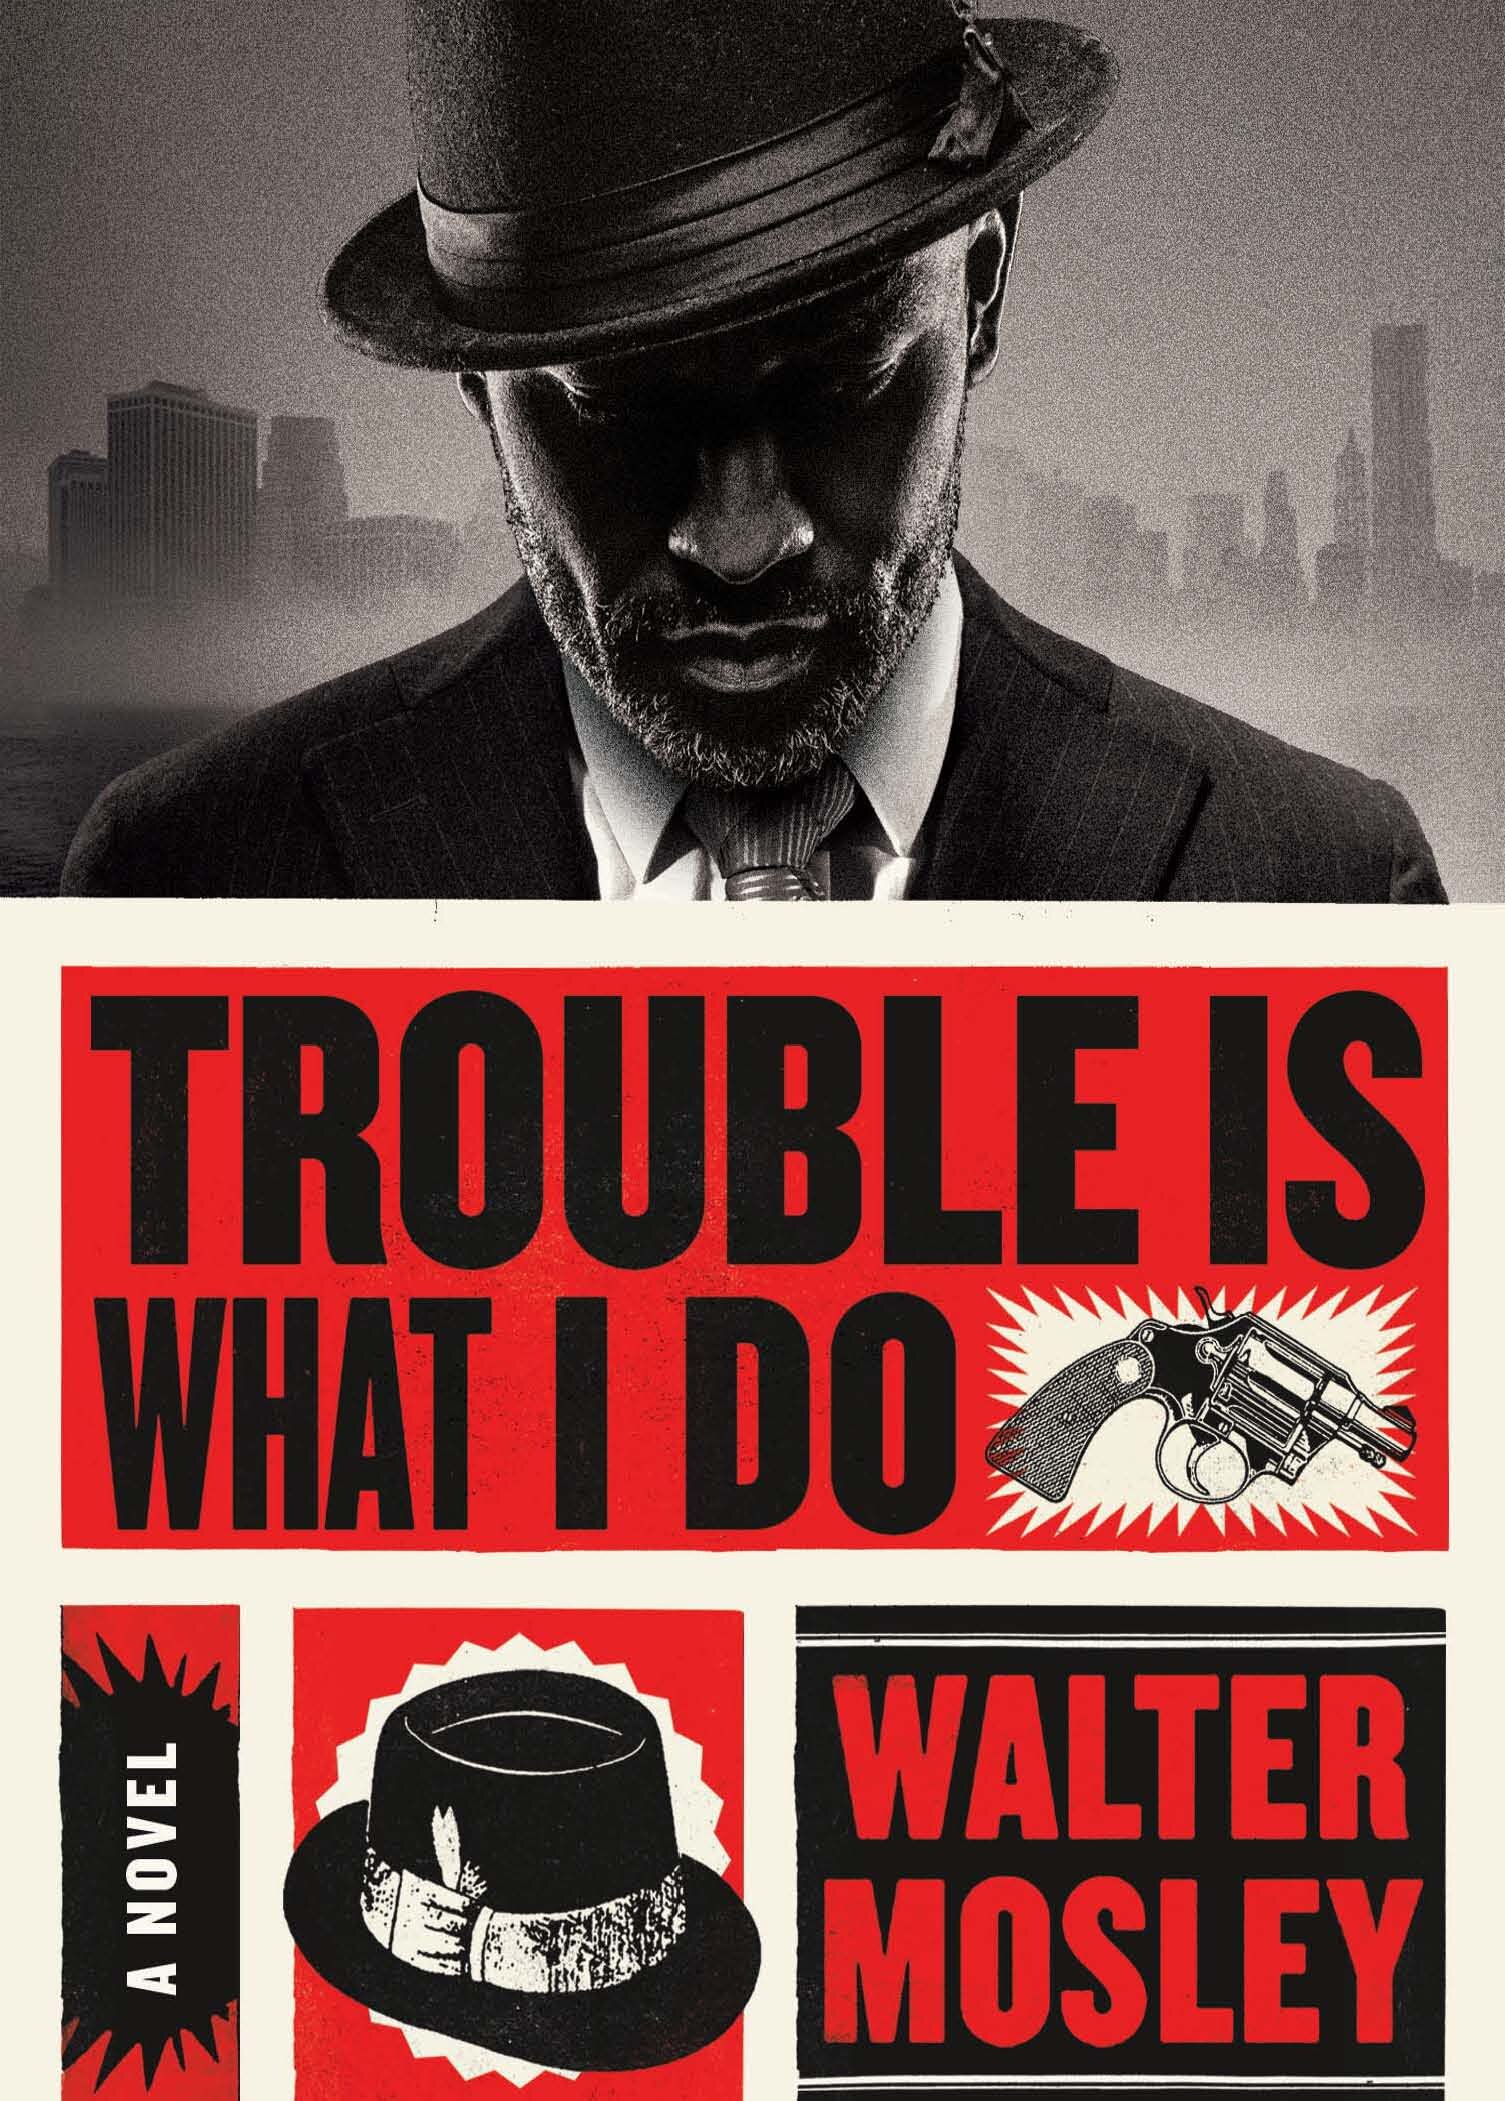 TROUBLE cover.jpg